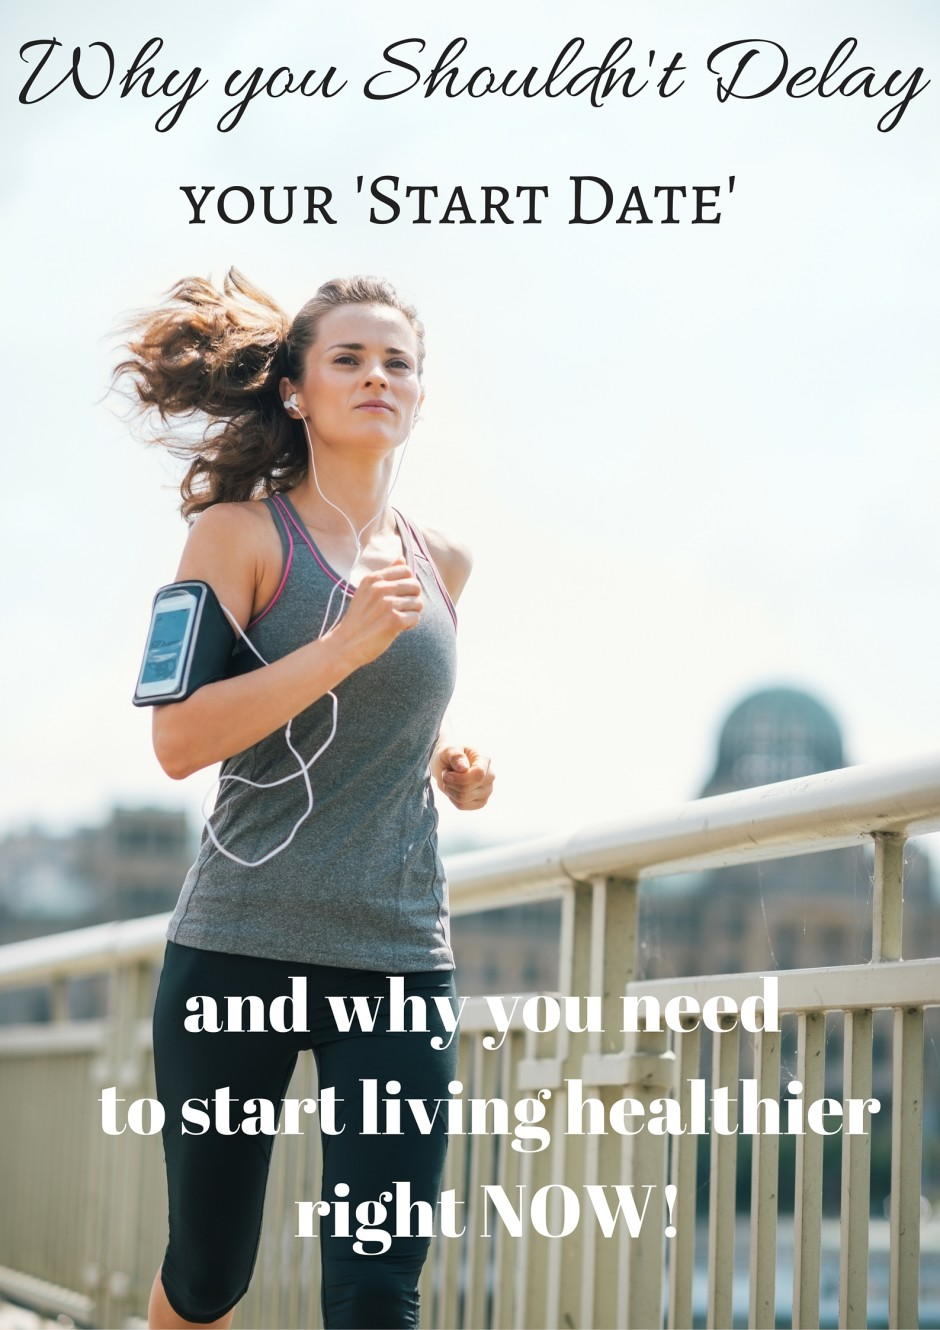 Why You Shouldn't Have a Start Date and why you should start living healthier right NOW!